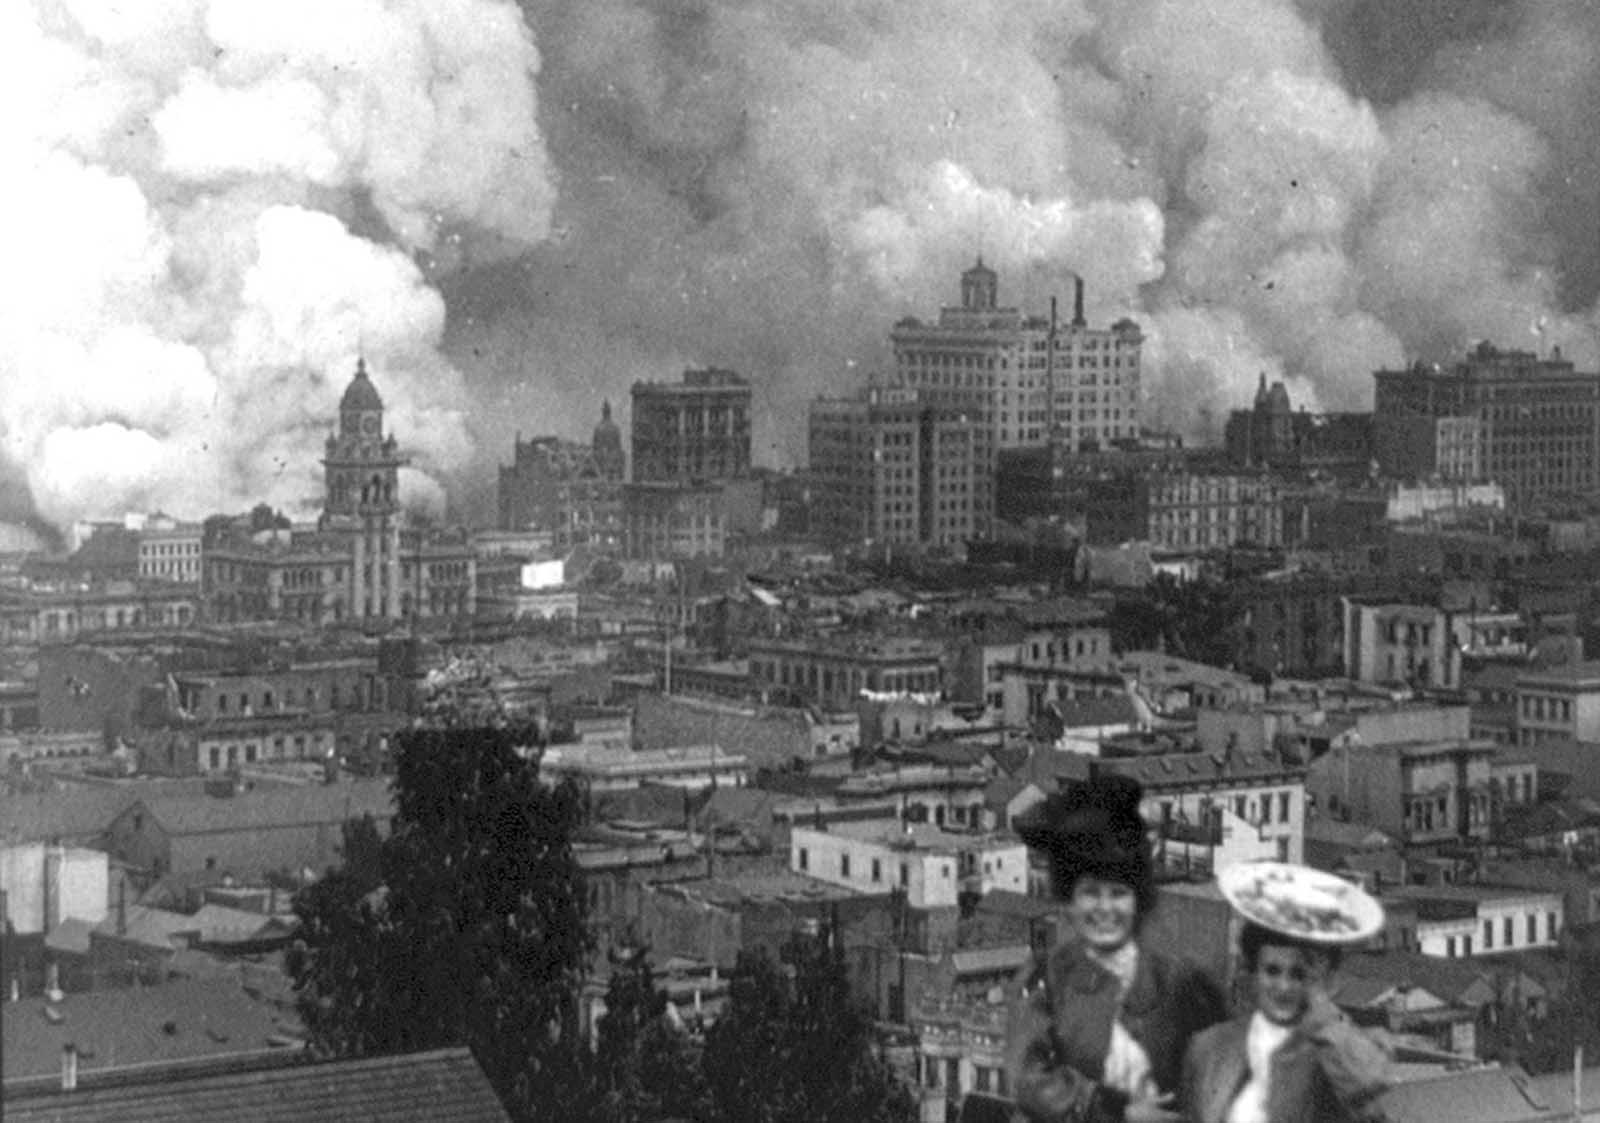 Onlookers pose for a photograph as San Francisco burns in the background on April 18, 1906.